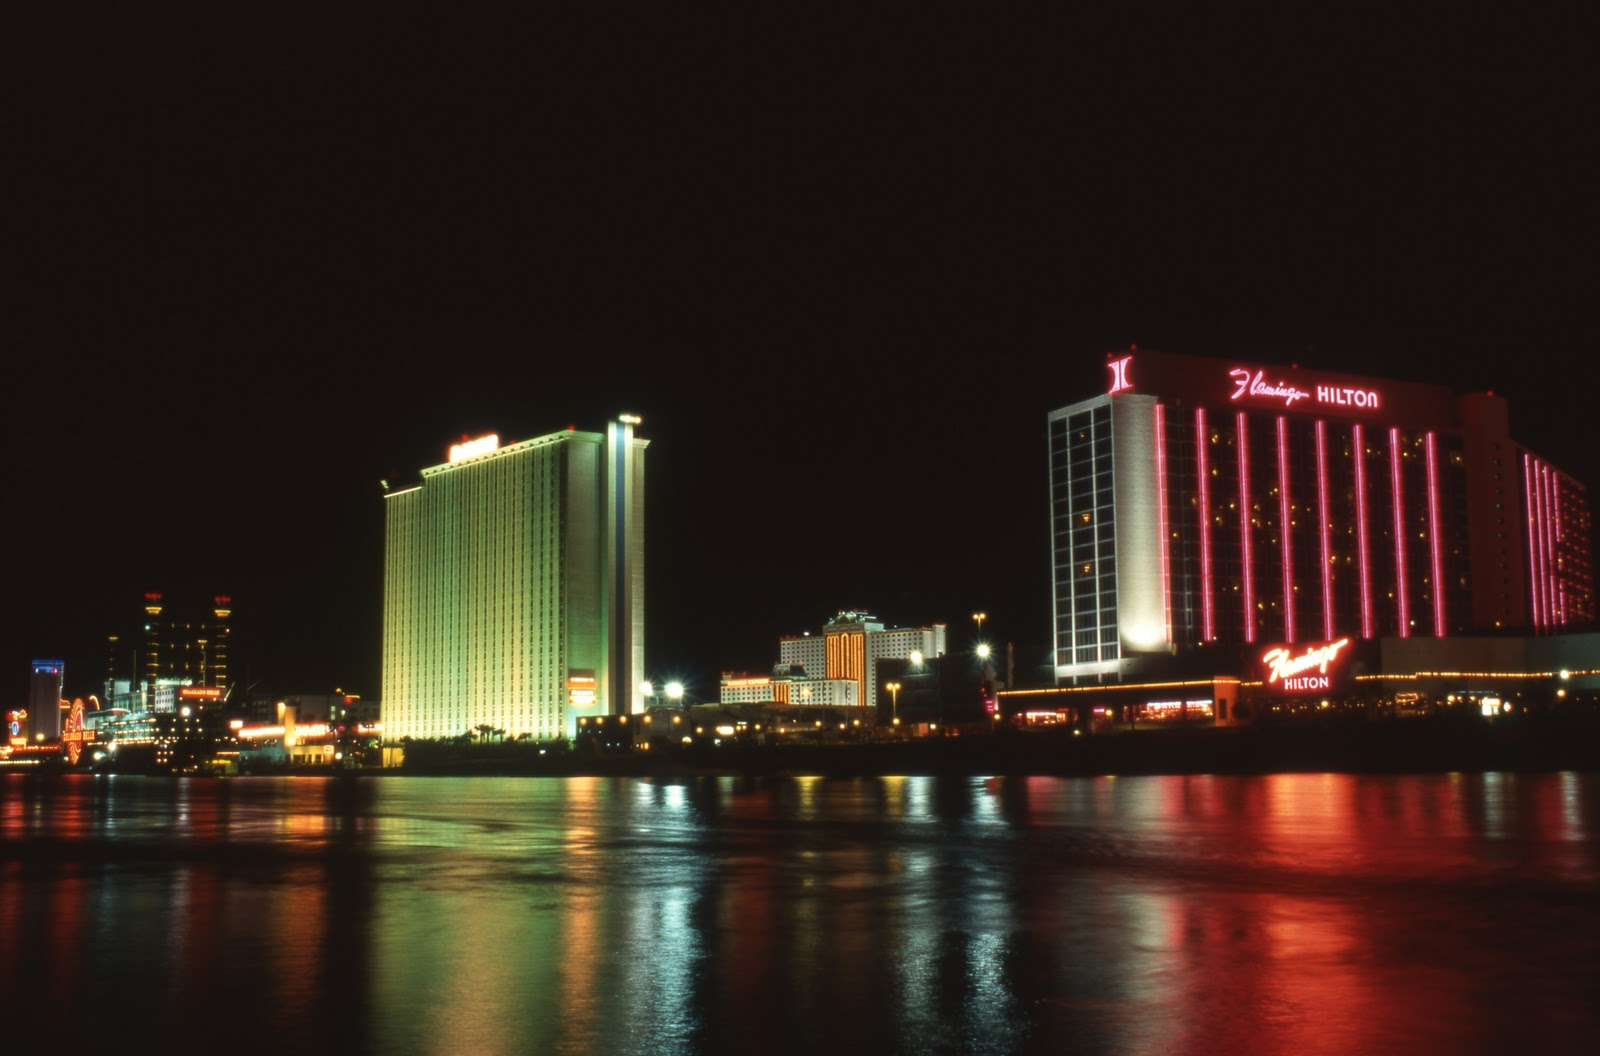 Riverside casino laughlin nv 16